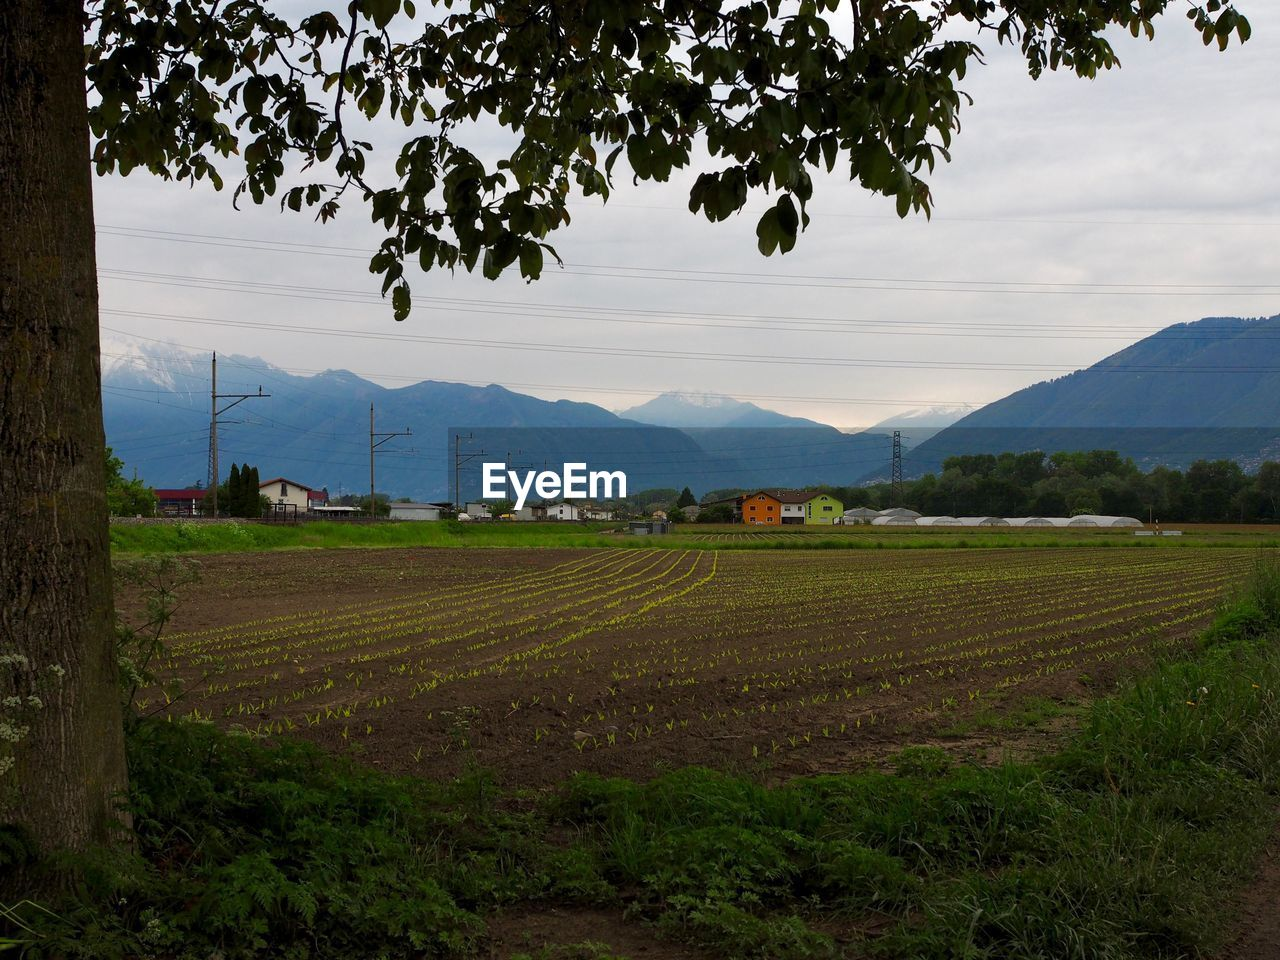 SCENIC VIEW OF FIELD AGAINST MOUNTAIN RANGE